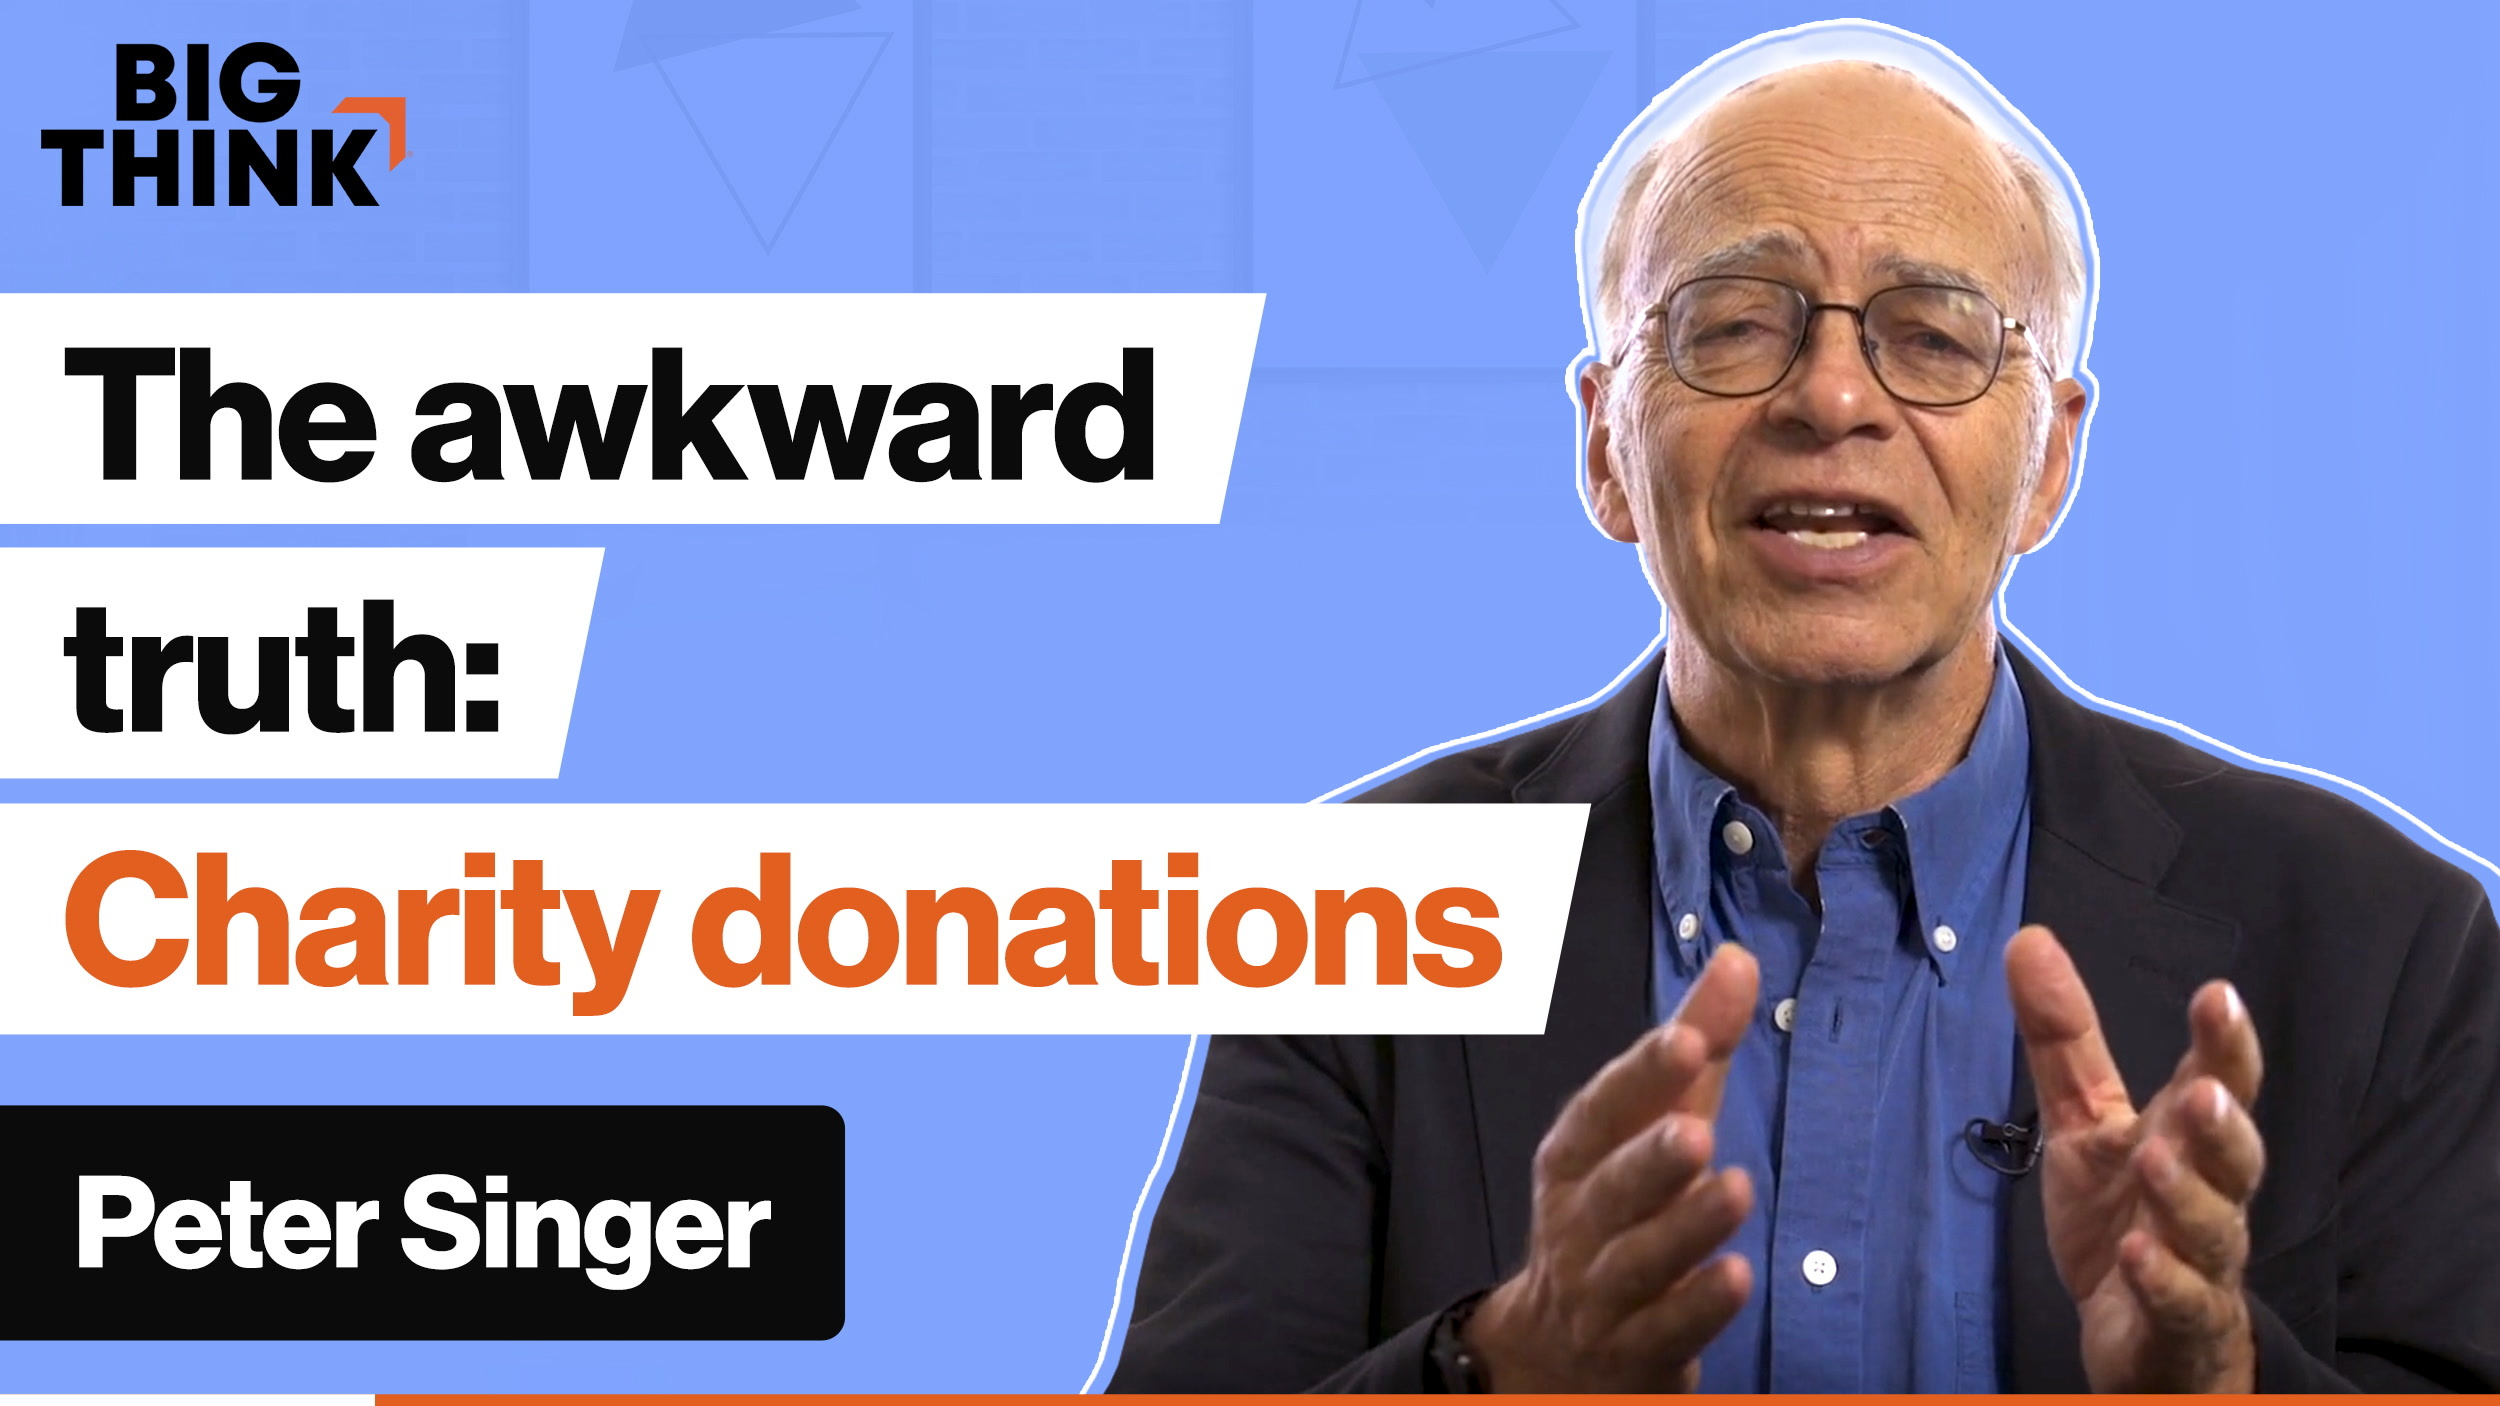 The awkward truth about choosing charities